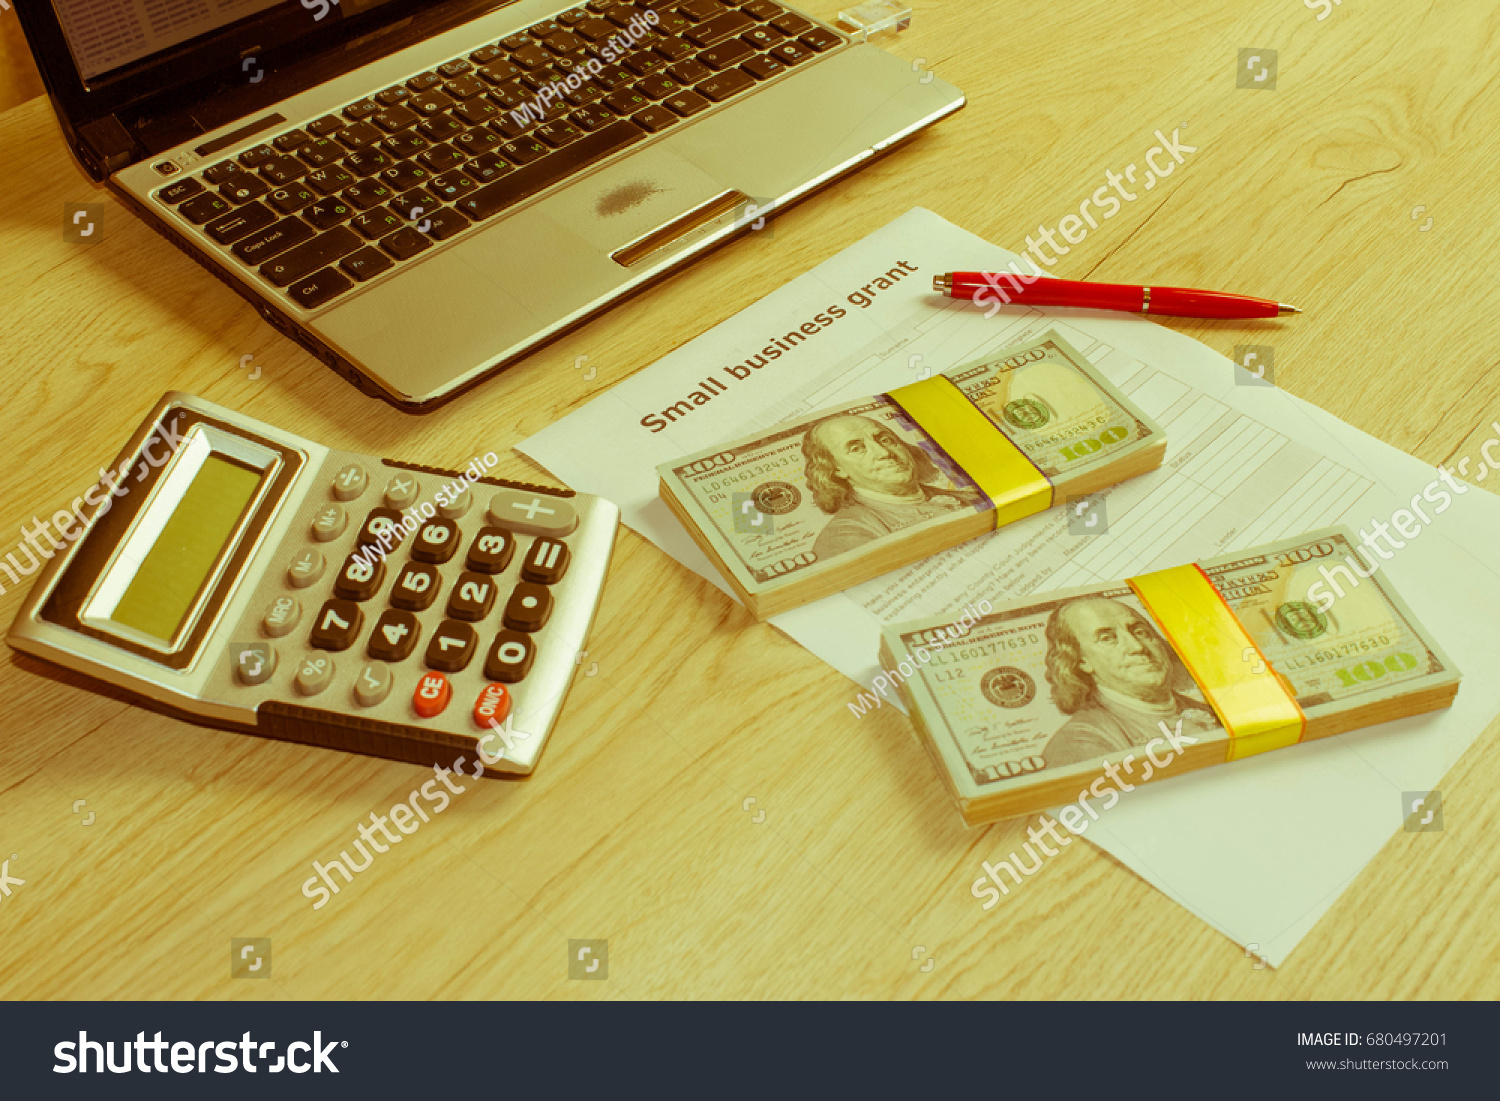 Getting a business credit card images free business cards get business grant build your business stock photo 680497201 get a business grant build your business magicingreecefo Image collections